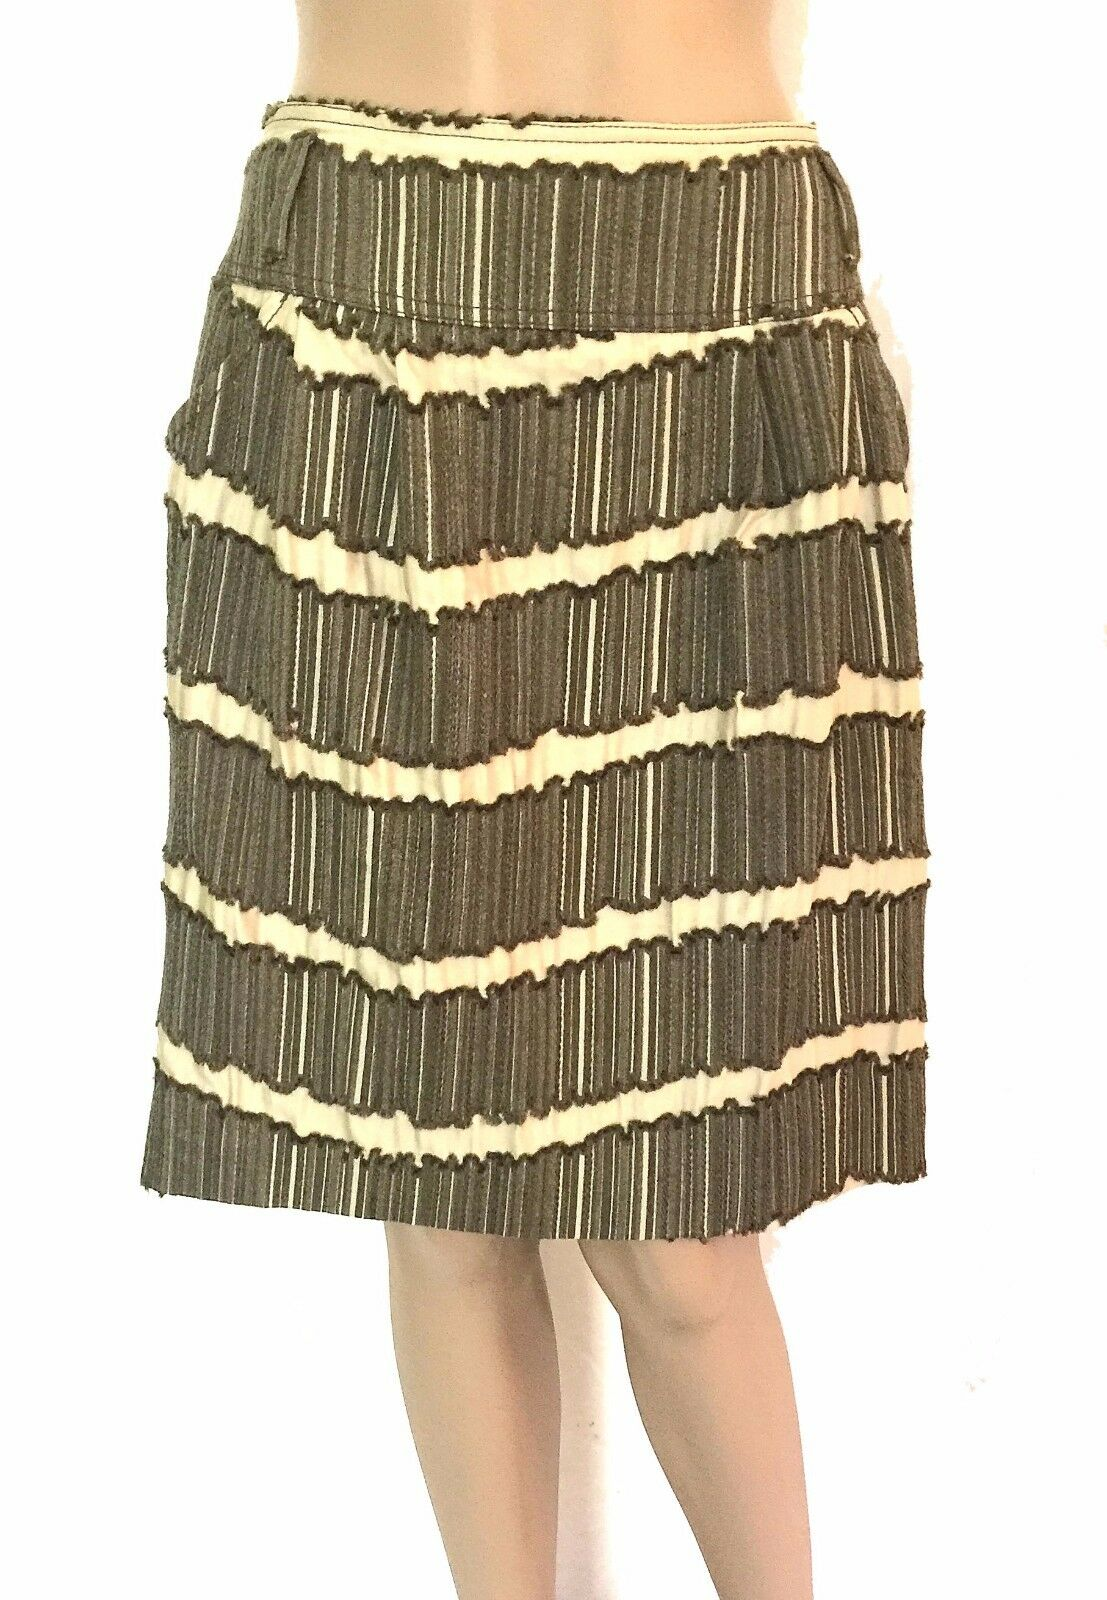 Piazza Sempione Olive Textured Wool Blend A-Line Skirt - Size 42 - US Size 8 EUC